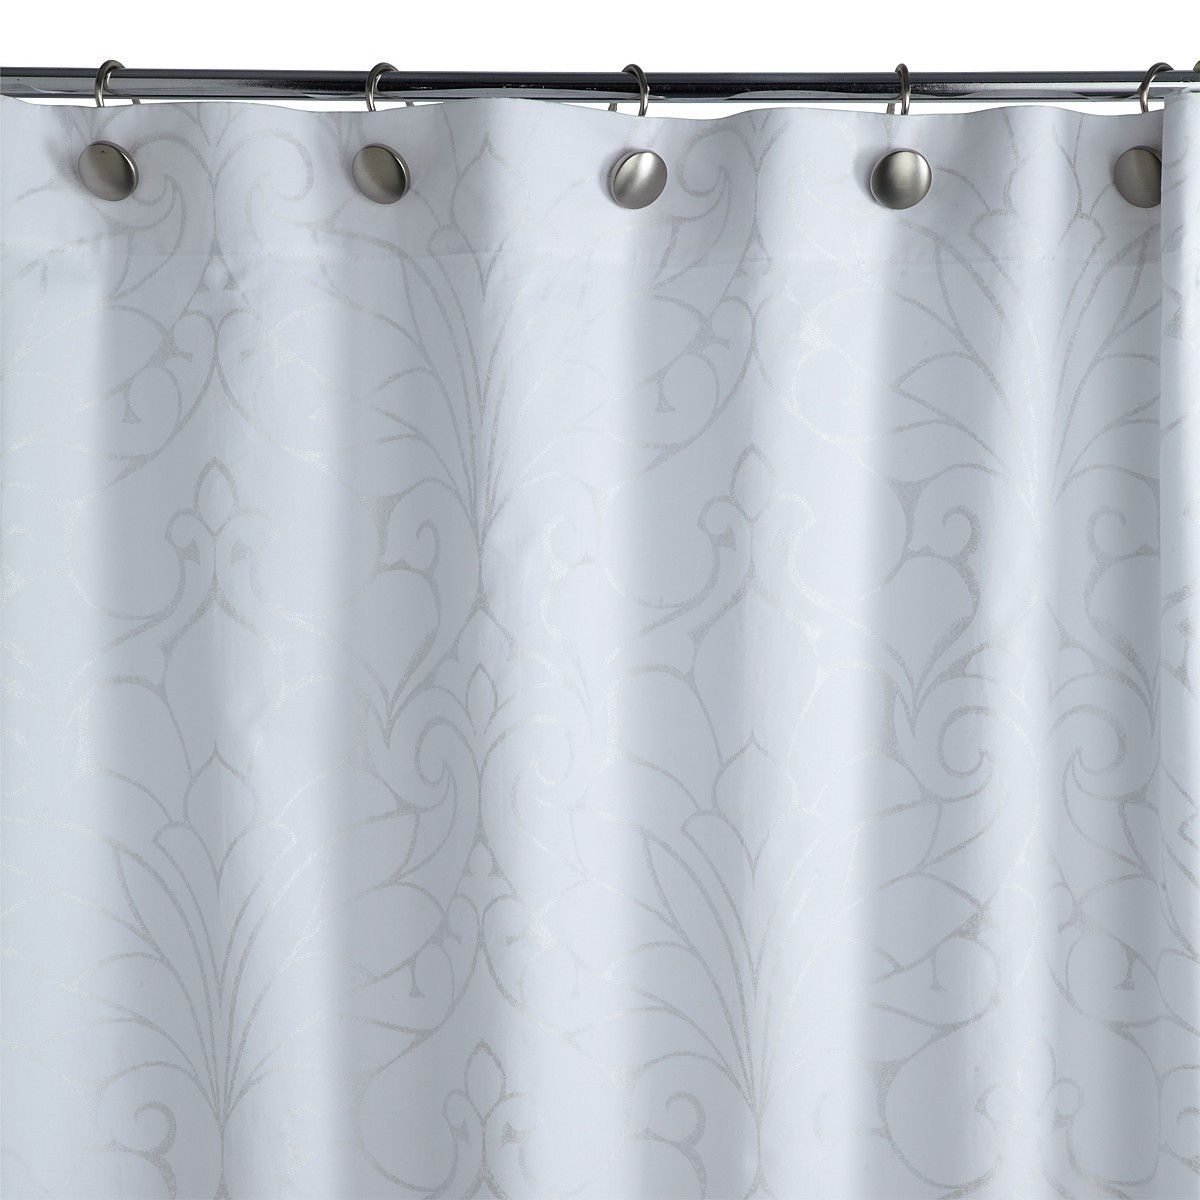 Bloomingdales Shower Curtain Liner • Shower Curtains Ideas